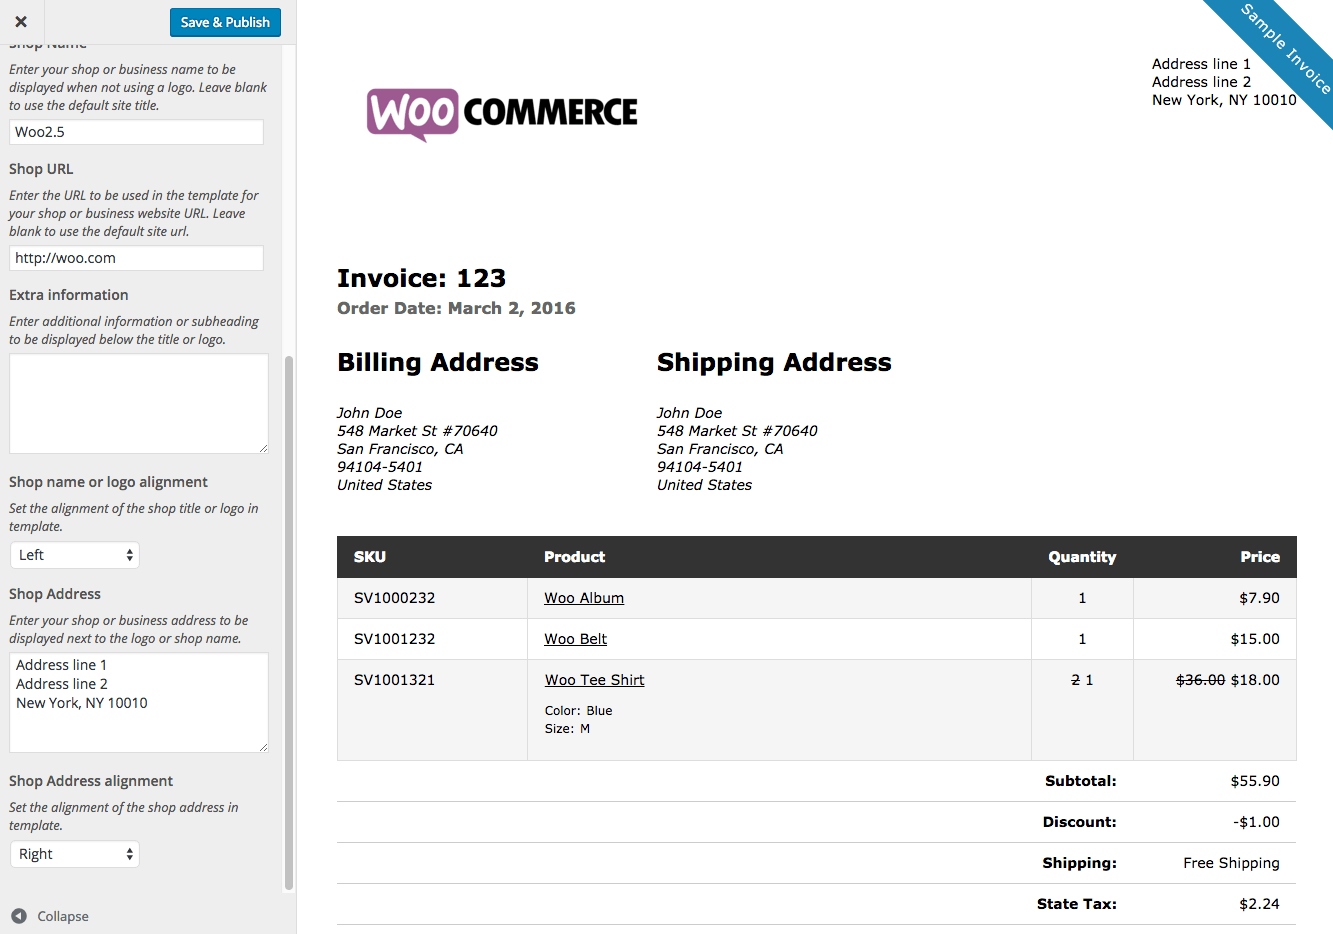 Usdgus  Prepossessing Print Invoices Amp Packing Lists  Woocommerce With Excellent Woocommerce Print Invoices  Packing Lists Customizer With Breathtaking Receipt Of Custom Also Printable Receipts For Payment In Addition Simple Sales Receipt And What Is Cash Receipts As Well As Fake Walmart Receipts Additionally How To Make A Receipt In Word From Woocommercecom With Usdgus  Excellent Print Invoices Amp Packing Lists  Woocommerce With Breathtaking Woocommerce Print Invoices  Packing Lists Customizer And Prepossessing Receipt Of Custom Also Printable Receipts For Payment In Addition Simple Sales Receipt From Woocommercecom